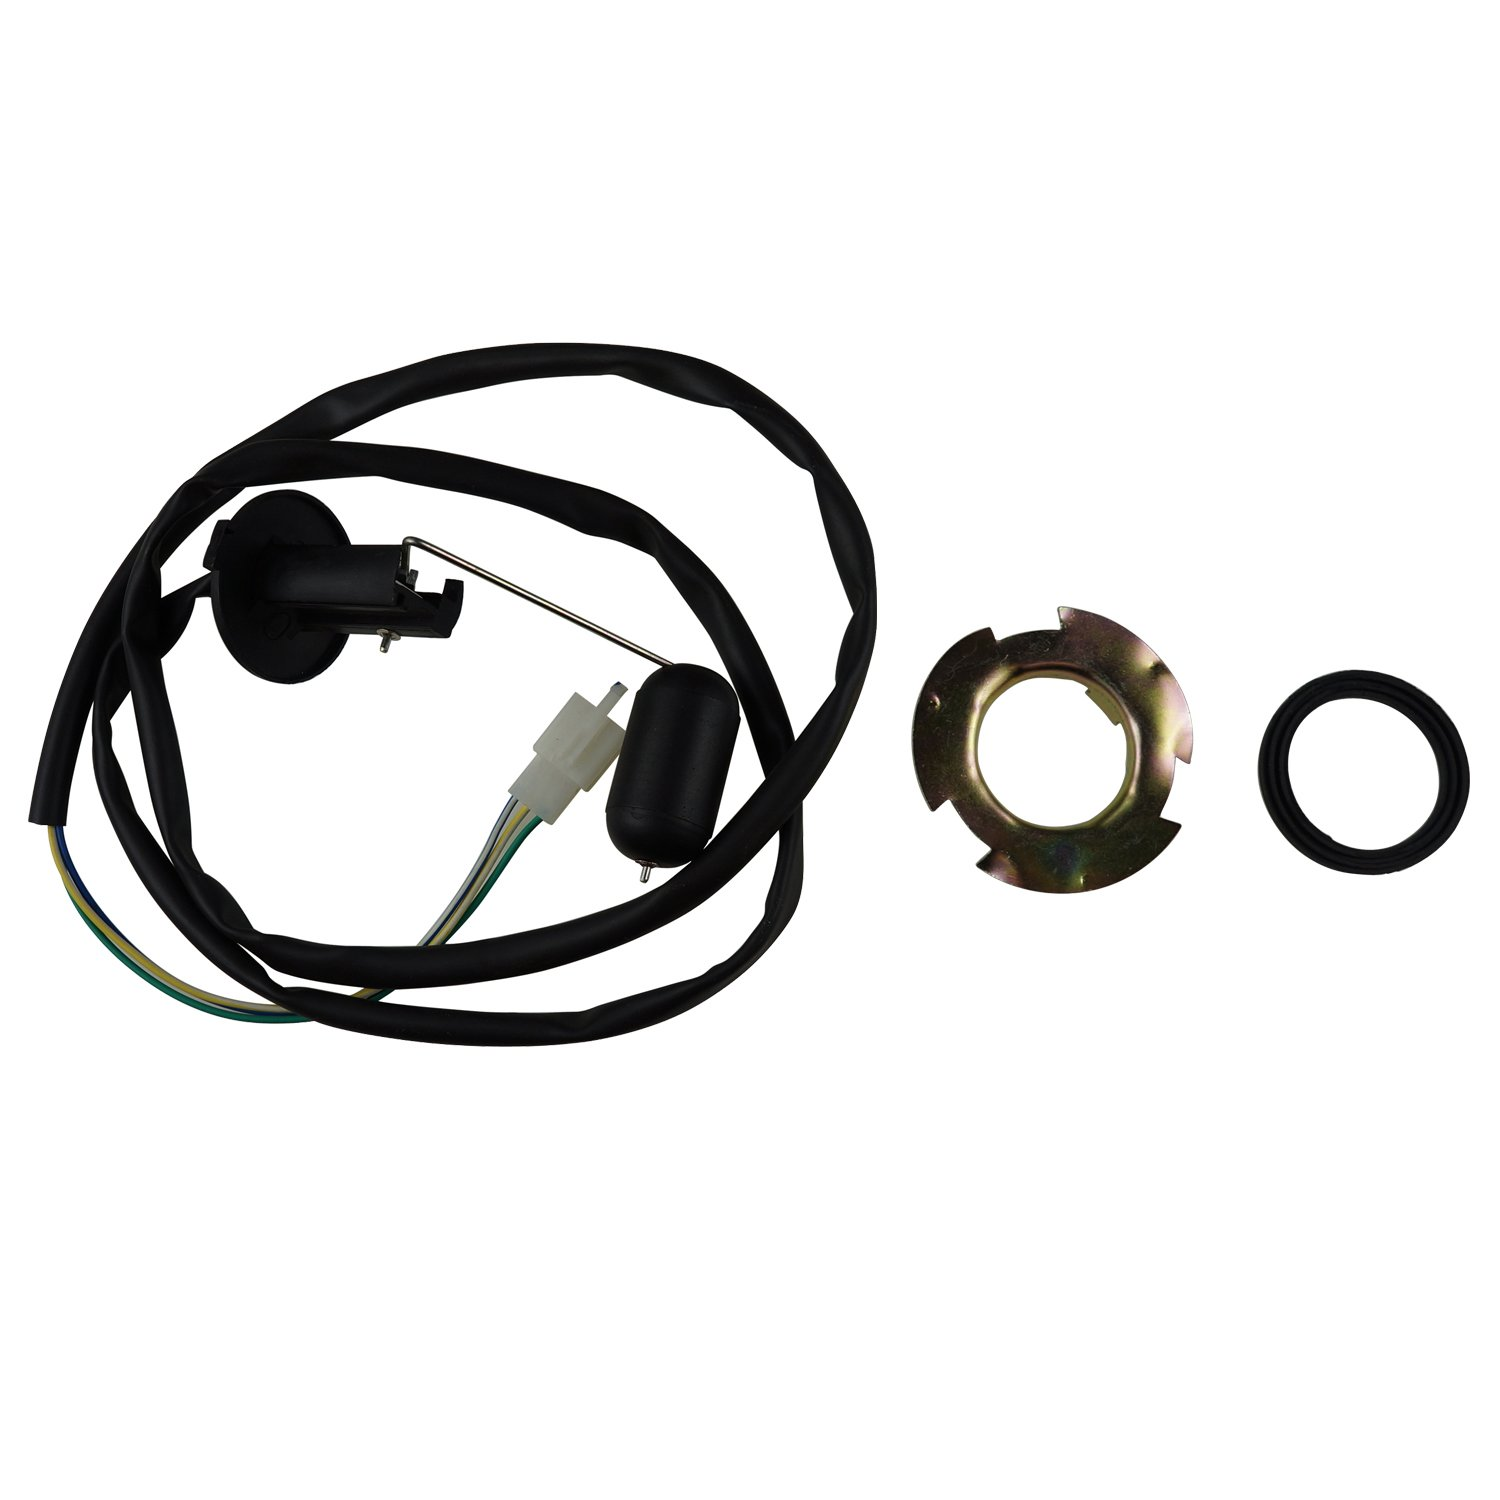 Mega Brands New Long Wire Fuel Tank Sensor in Tank Float for 49cc 50cc 150cc GY6 Engine Scooter Moped Trike